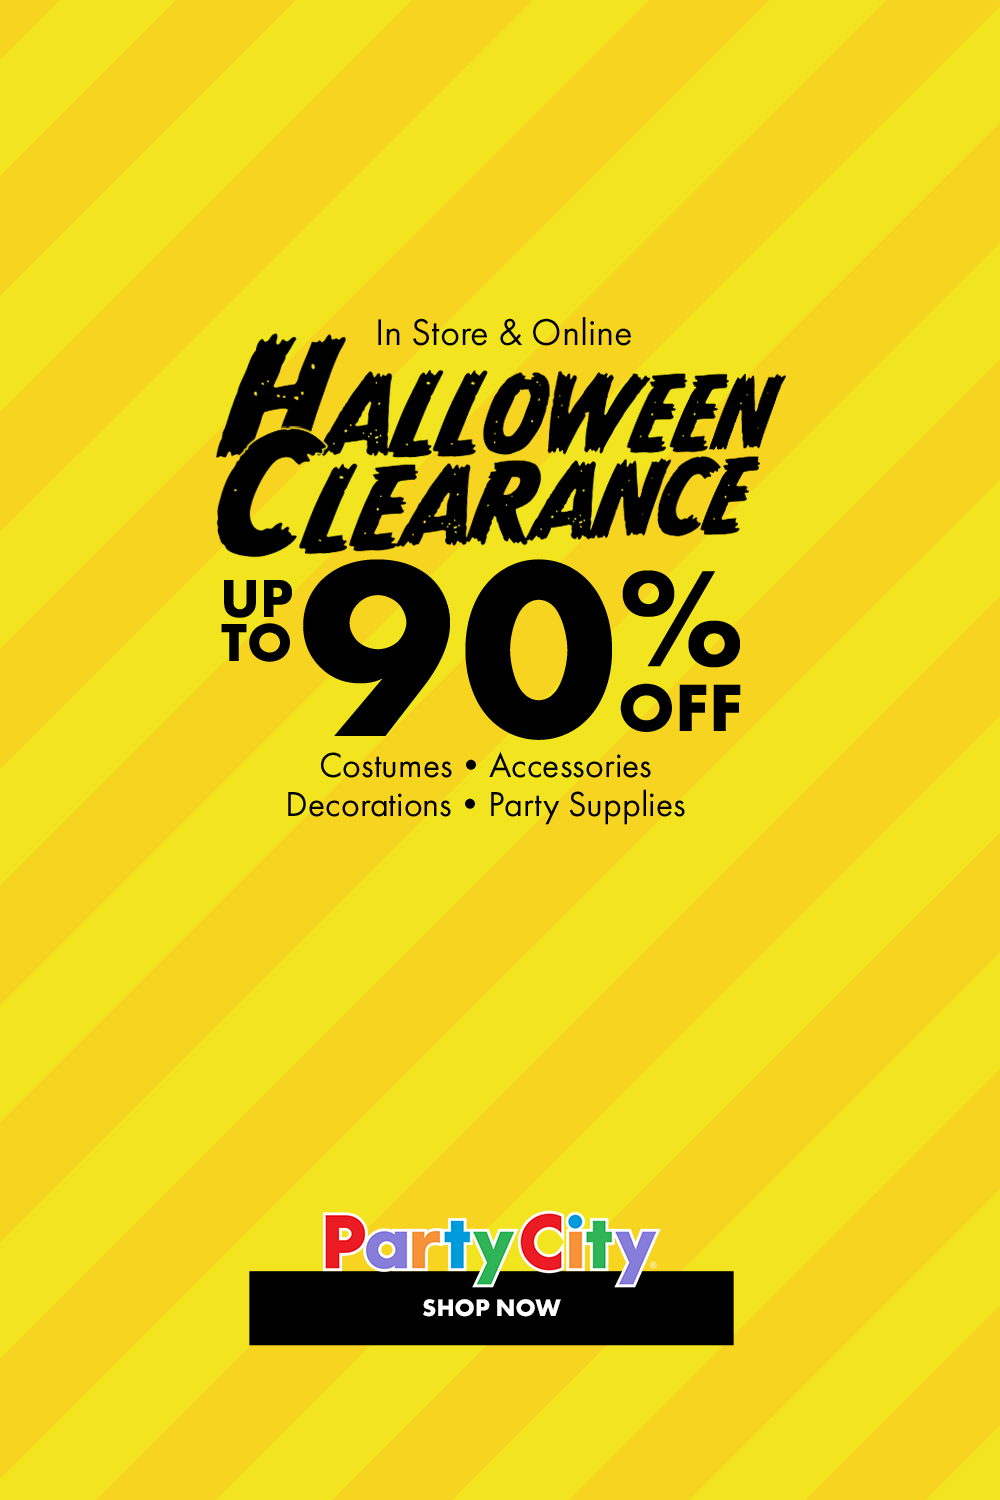 Get The Most Boo For Your Buck Shop Party City S Halloween Clearance Event For Costumes Accessories Decorations Party Supplies Diy Halloween Window Decorations Halloween Coloring Sheets Halloween Clearance